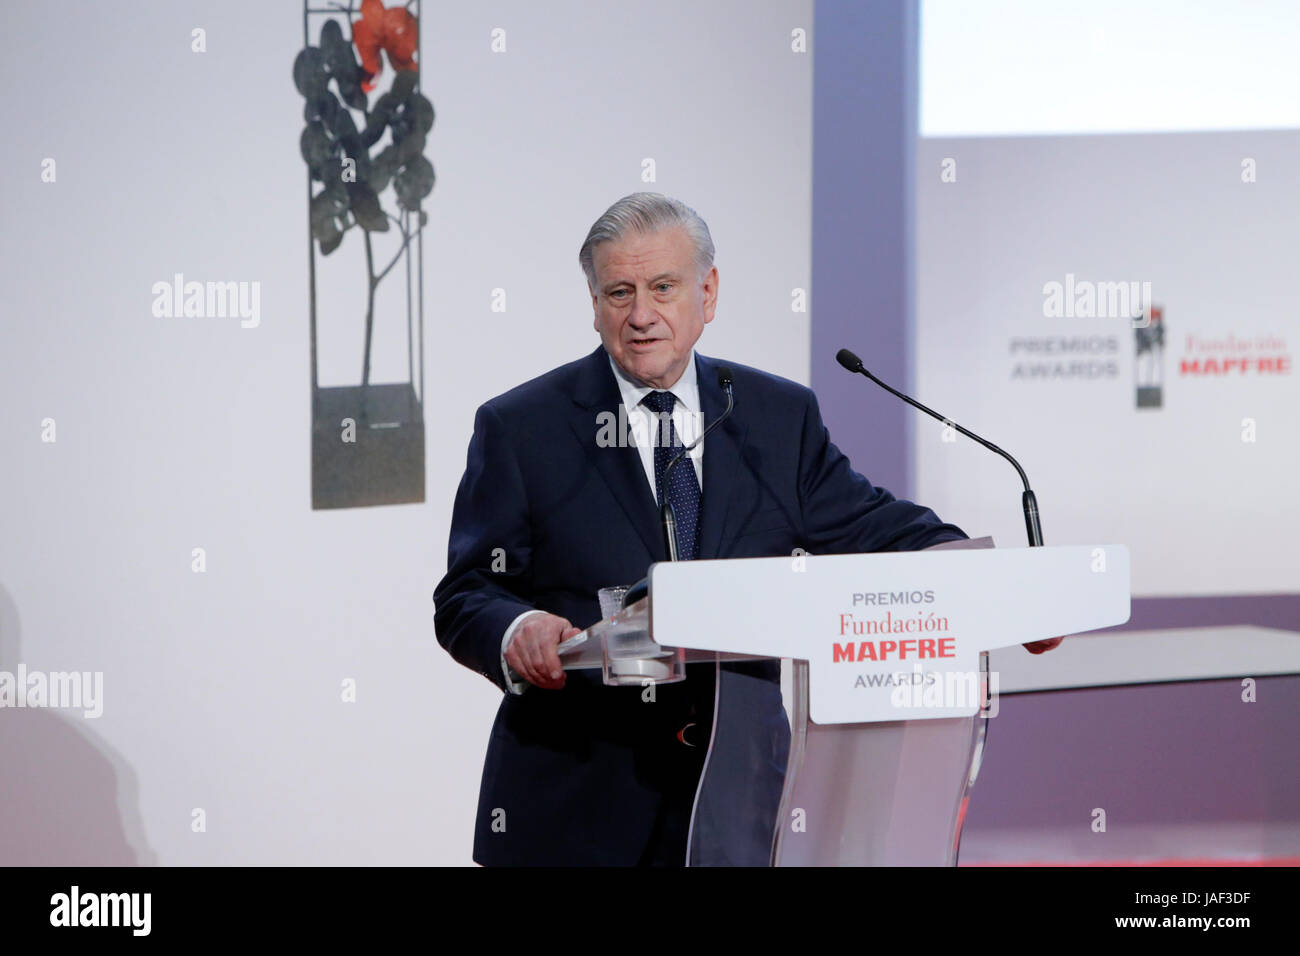 Valentin Fuster During The Delivery Of The Fundacion Mapfre Awards In  Madrid, Tuesday 6 June 2017 Credit: Gtres Información Más Comuniación On